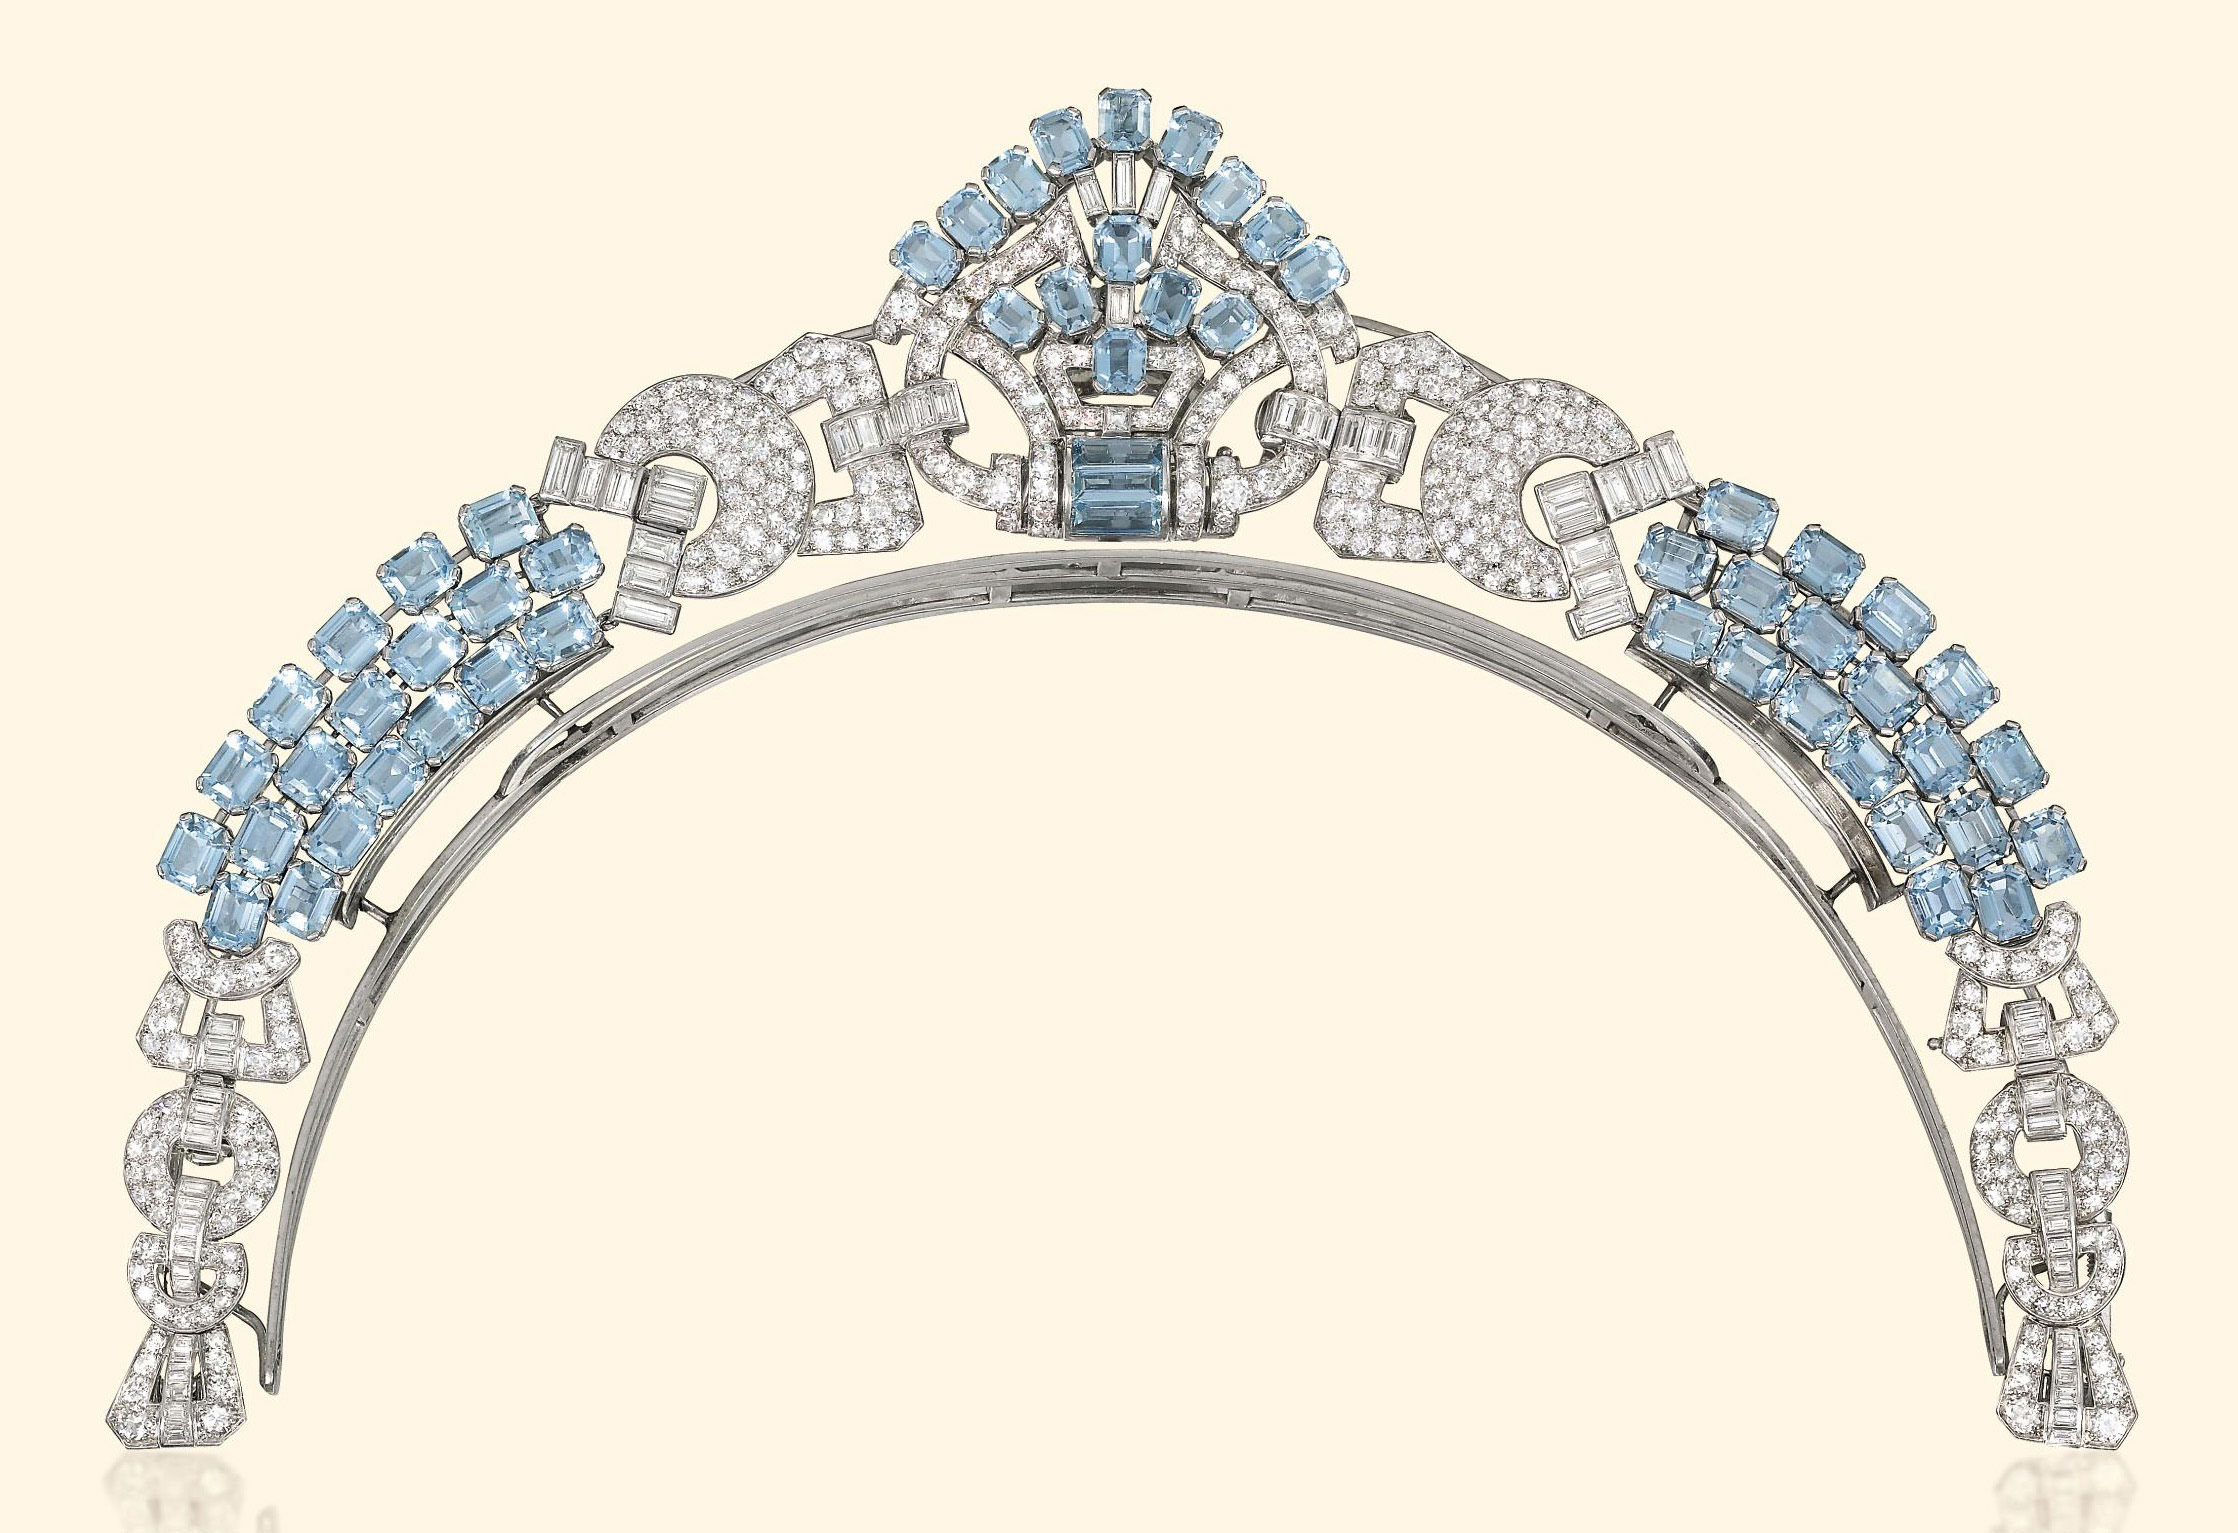 AN ART DECO AQUAMARINE AND DIAMOND NECKLACE, BY LACLOCHE FRÈRES